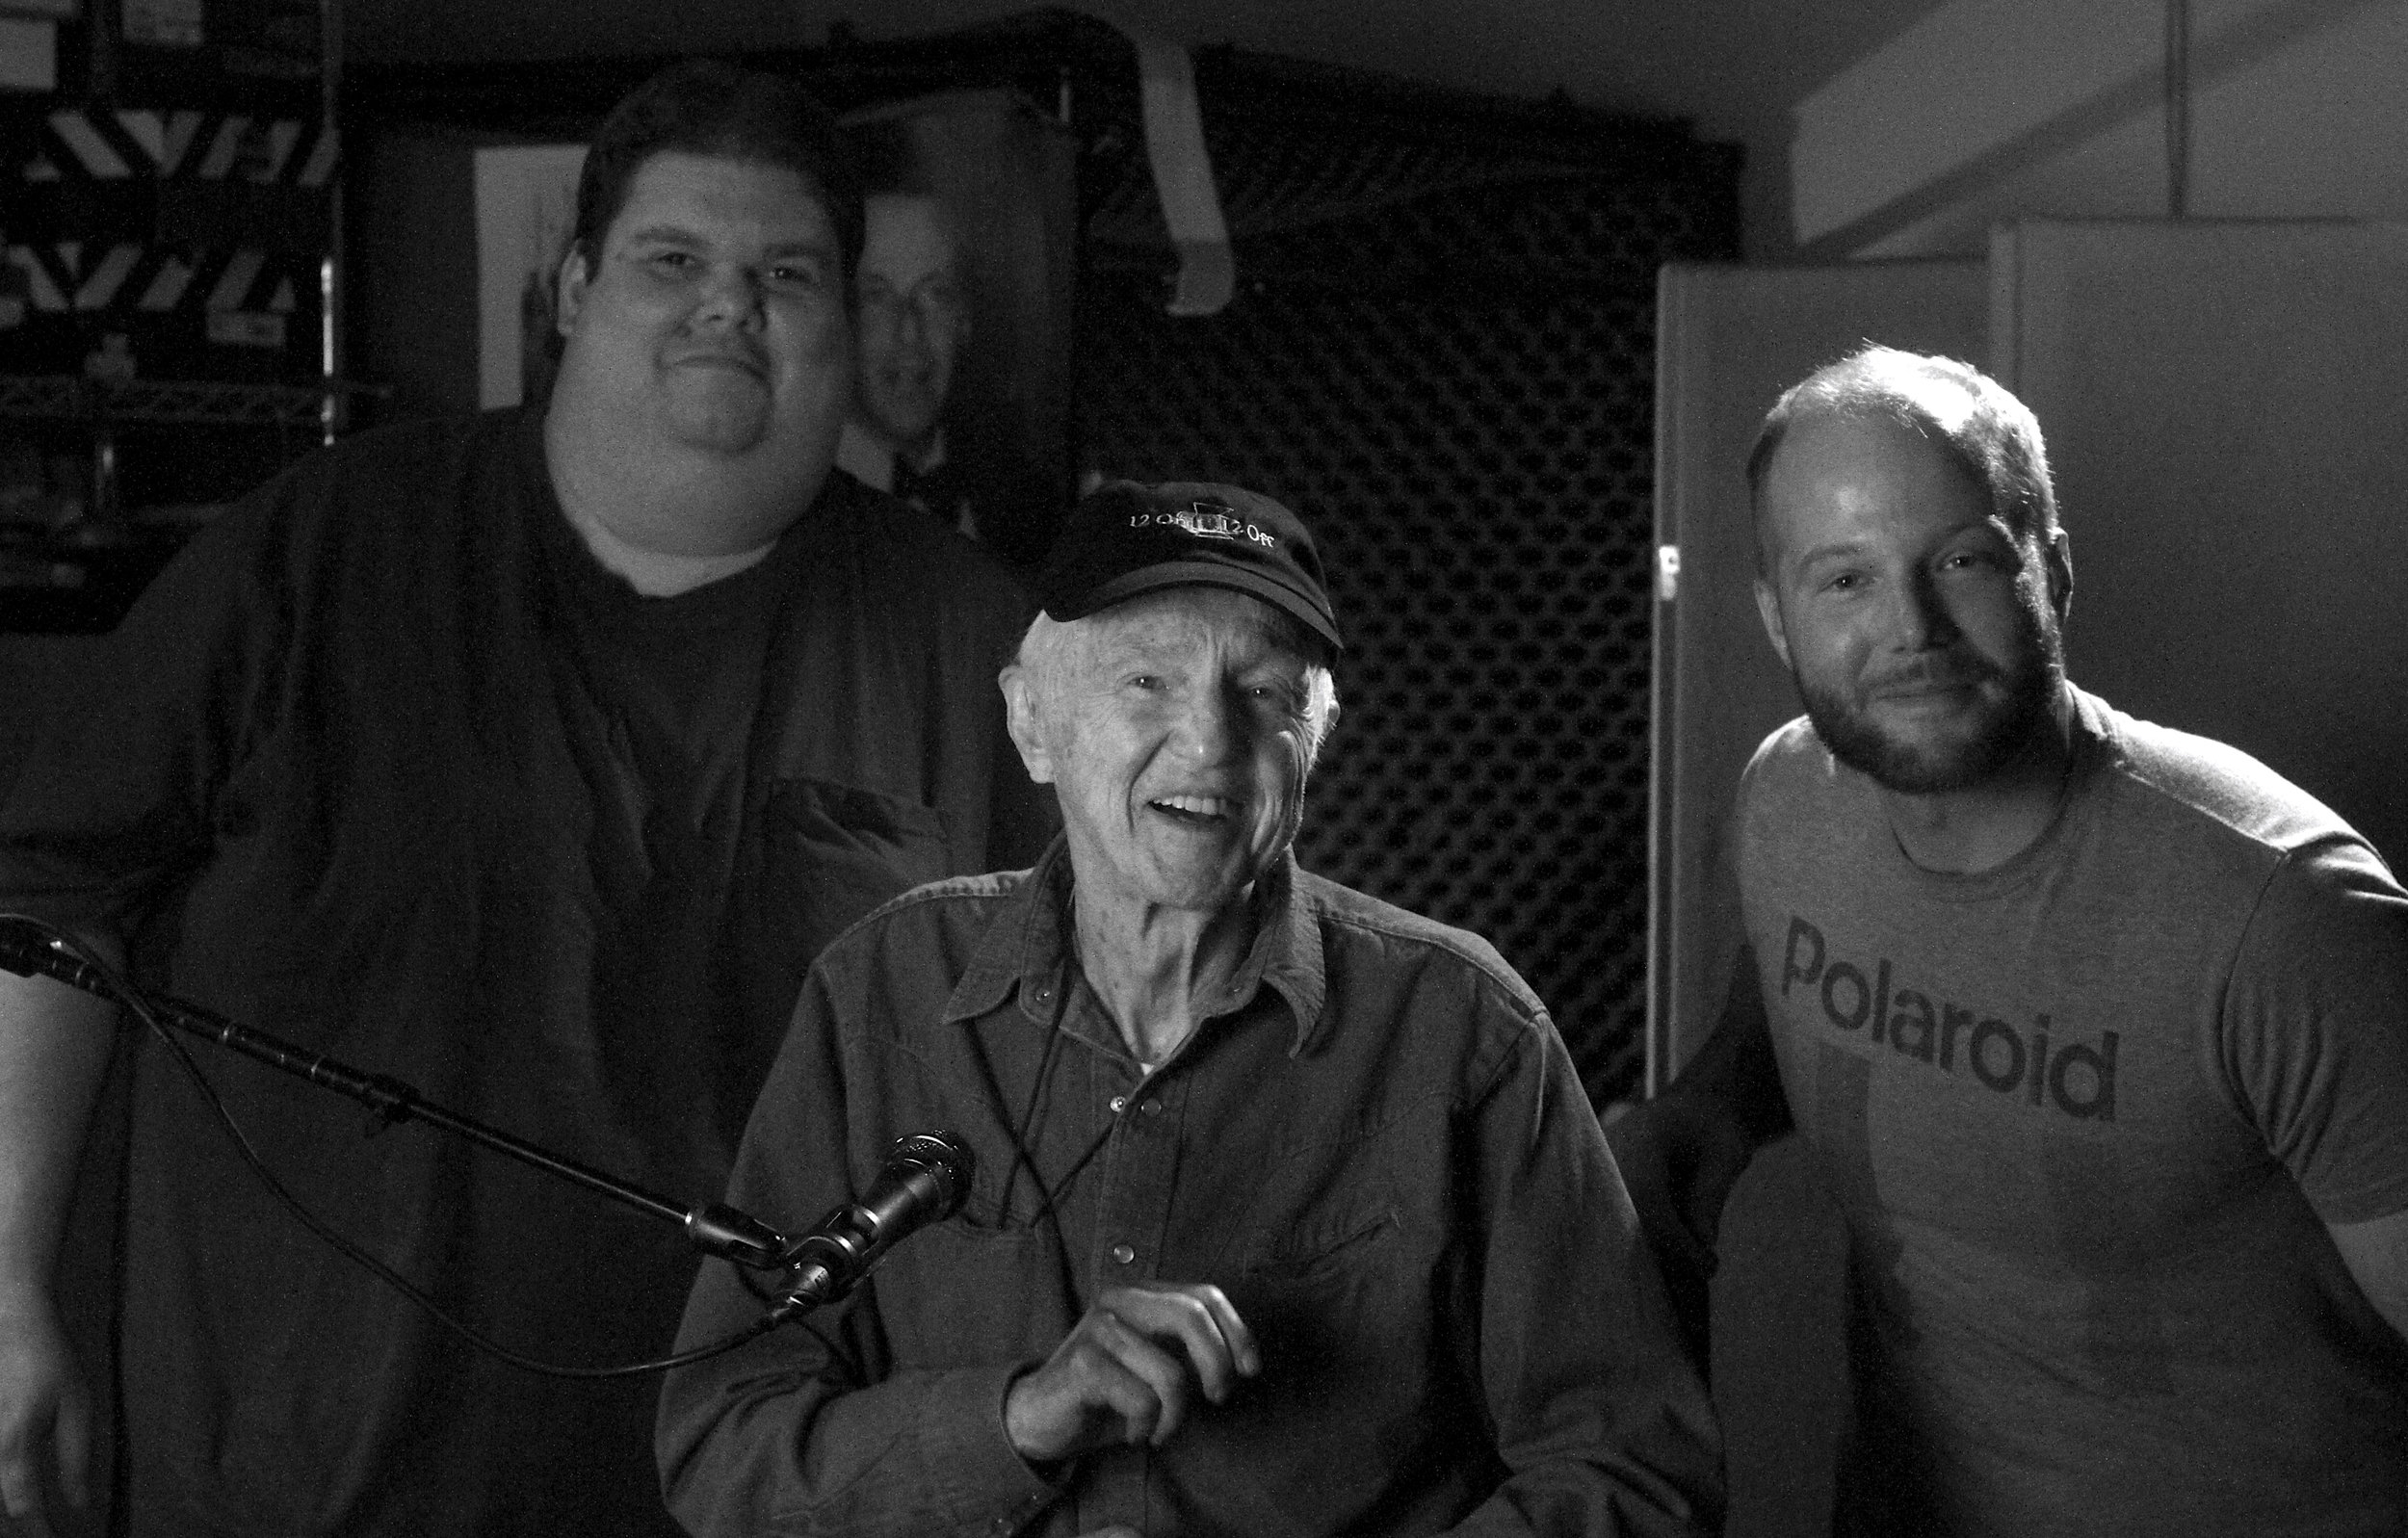 Haskell Wexler, A.S.C. joins us here at Cinematic Immunity Studios.